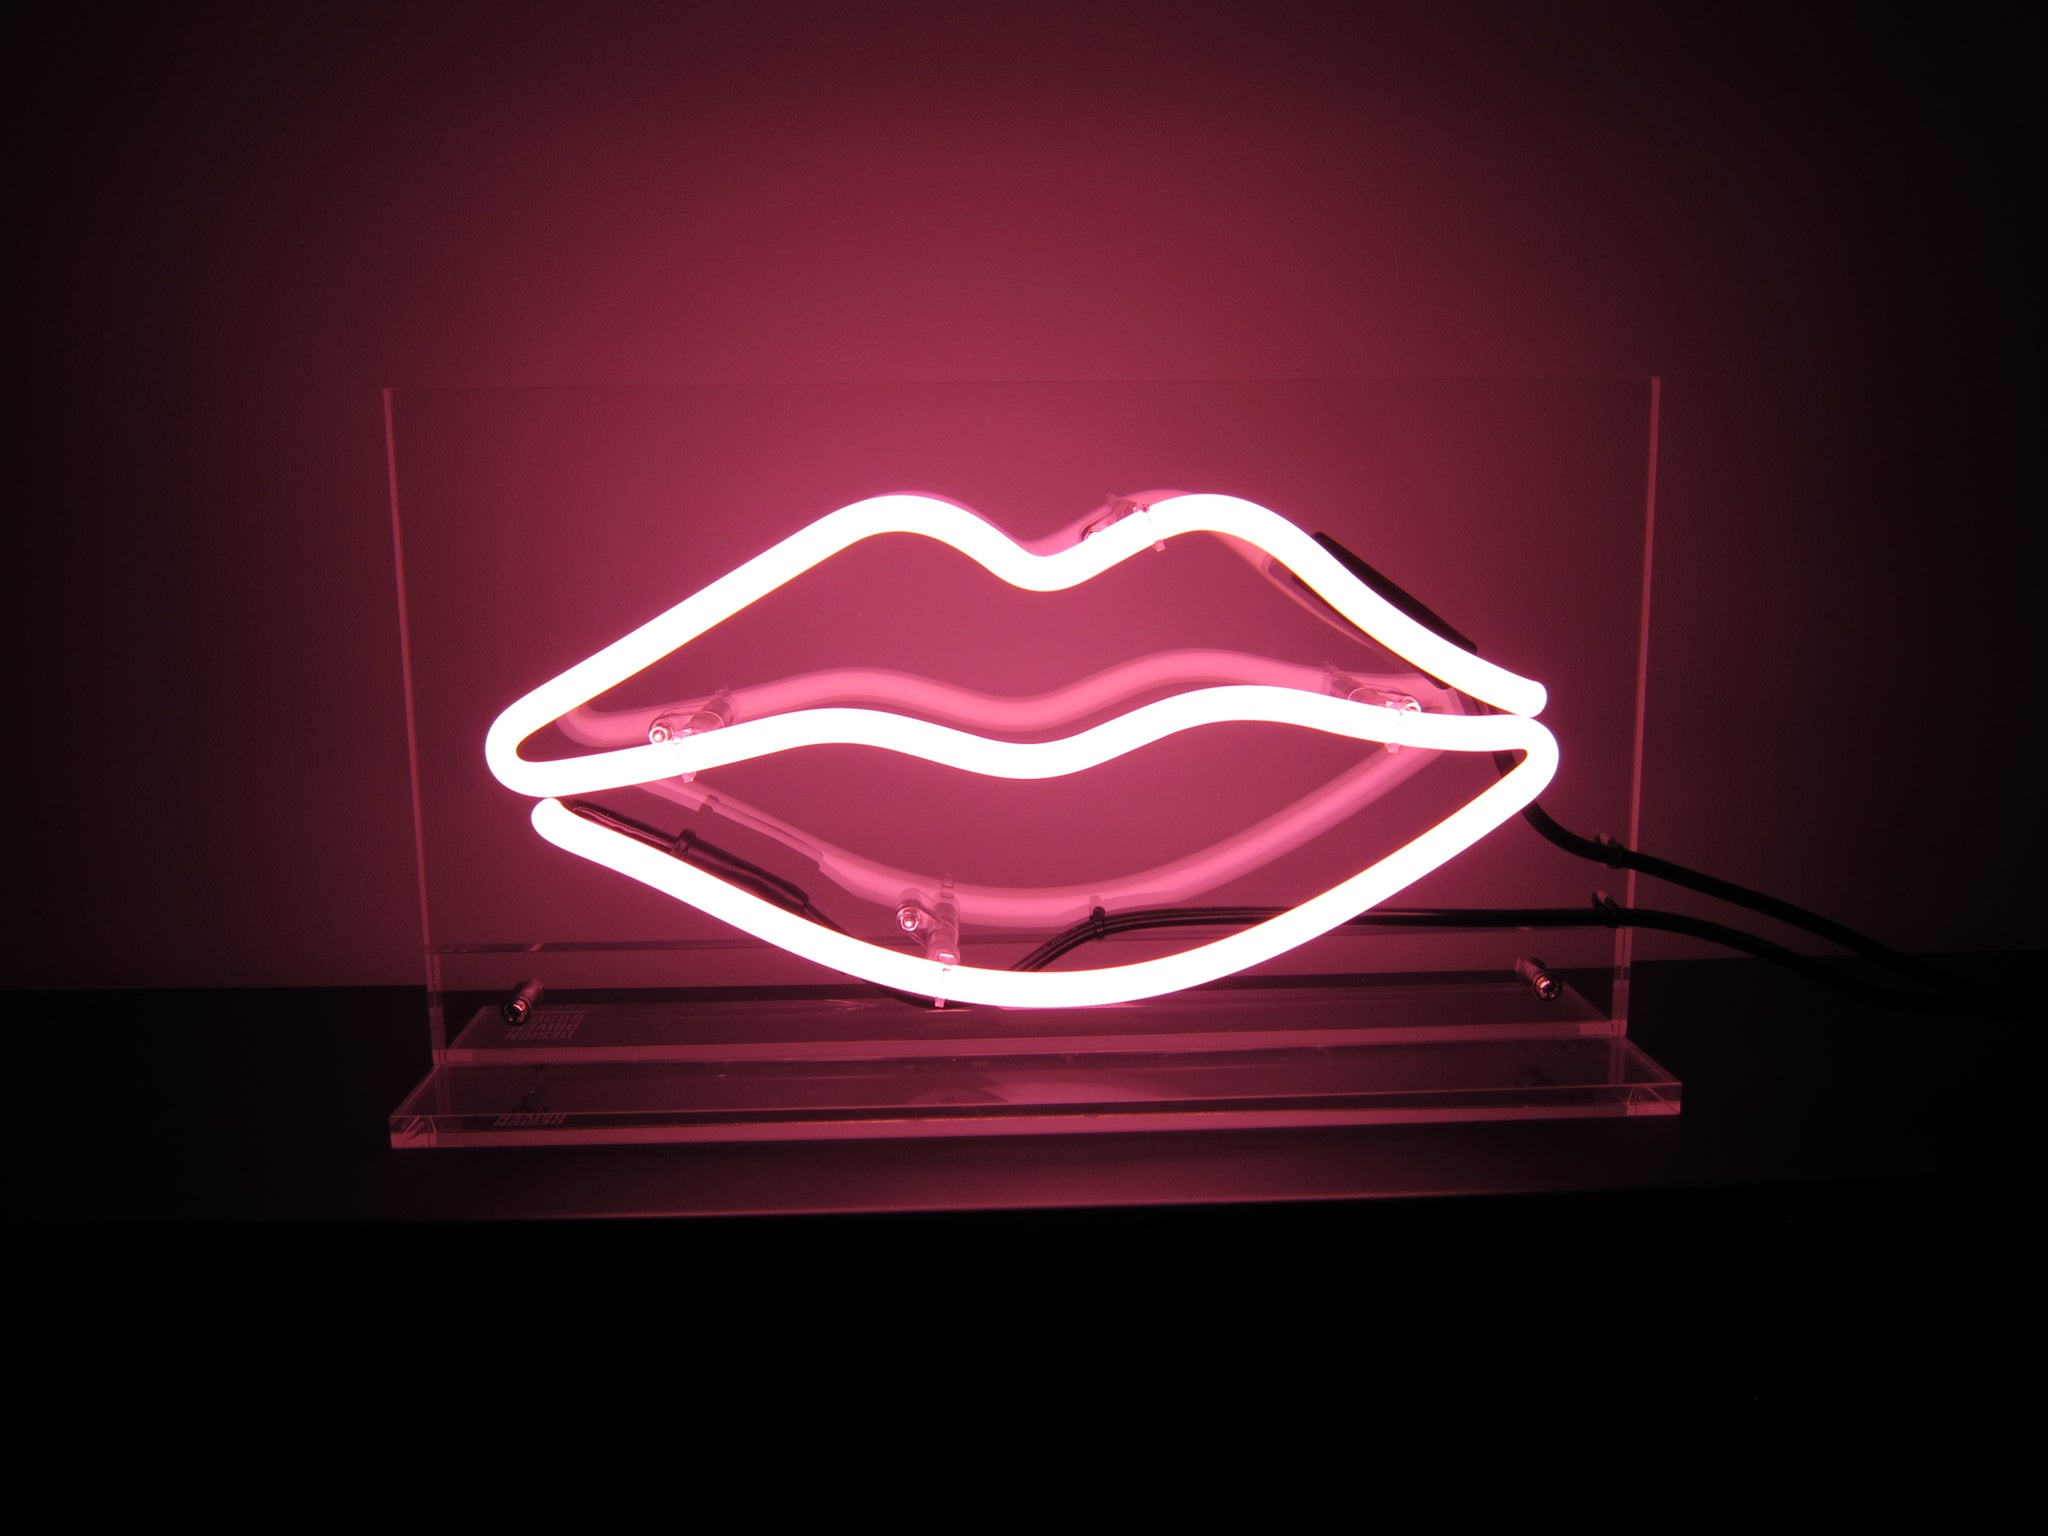 Lips Neon - Design Driven Goods